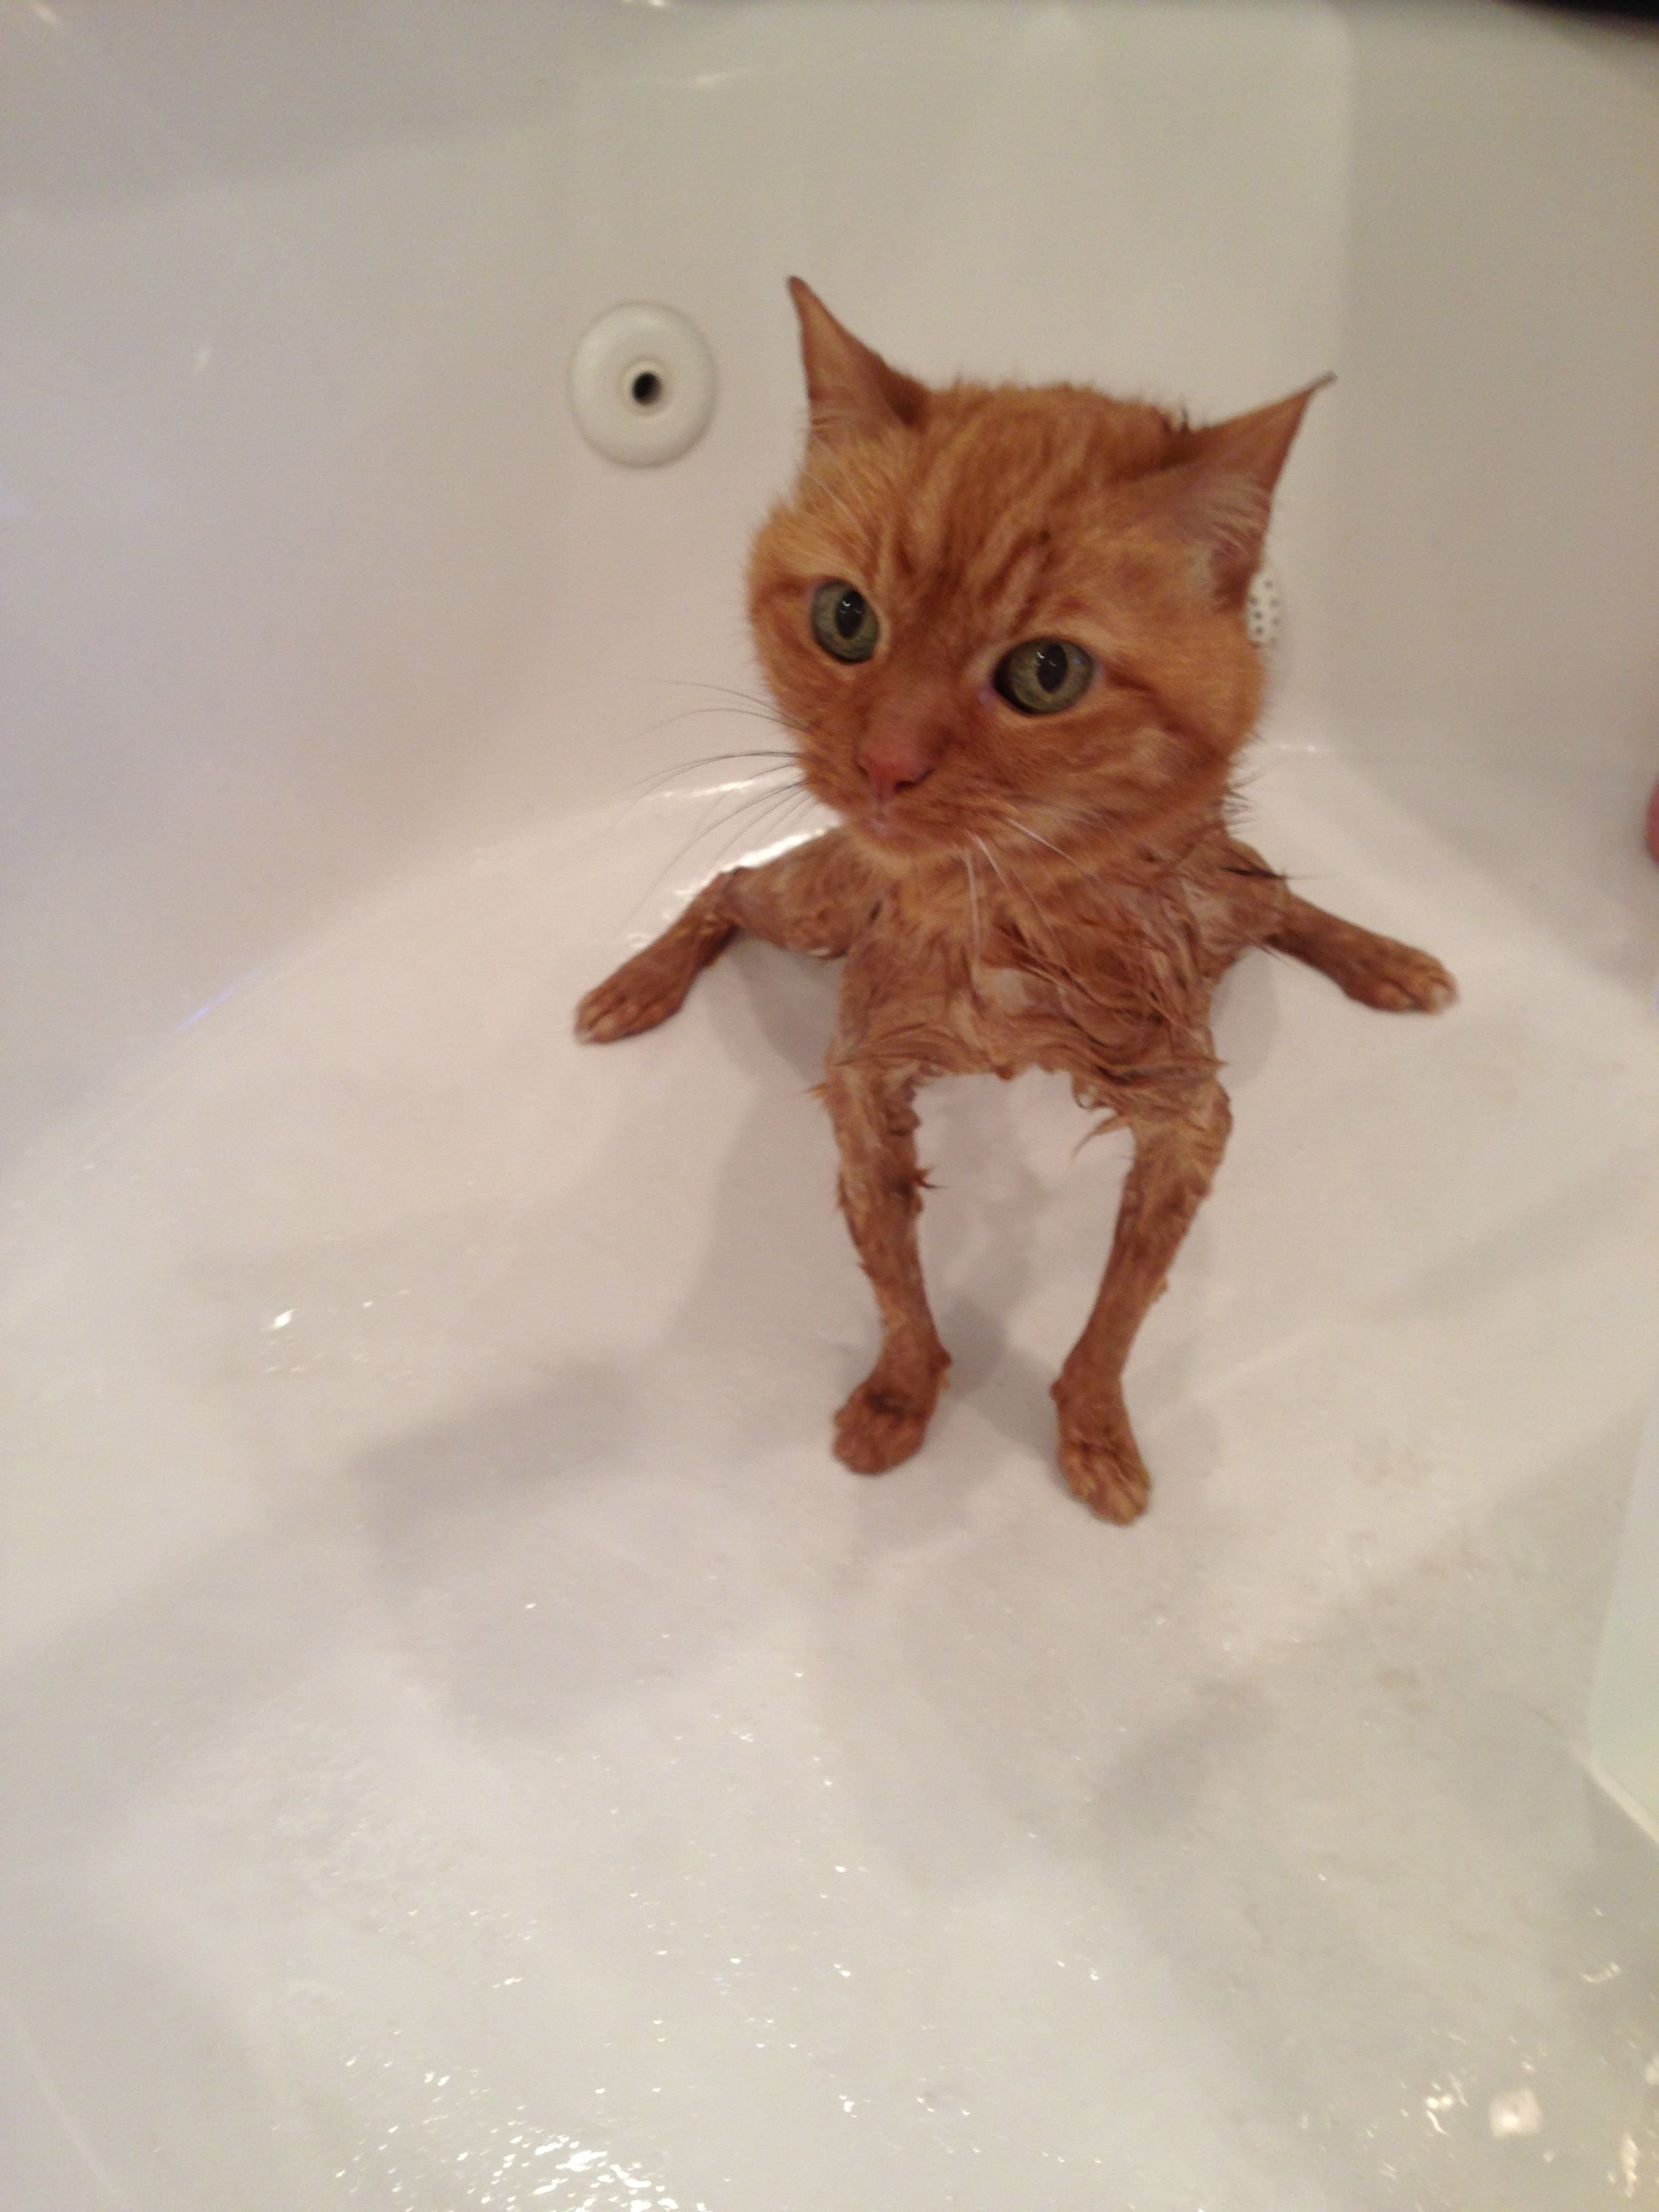 This Funny Cat Picture Was Not Altered In Any Way Whiskers Our Orange Tabby Getting A Bath Funny Cute Cats Funny Cat Pictures Cute Funny Animals